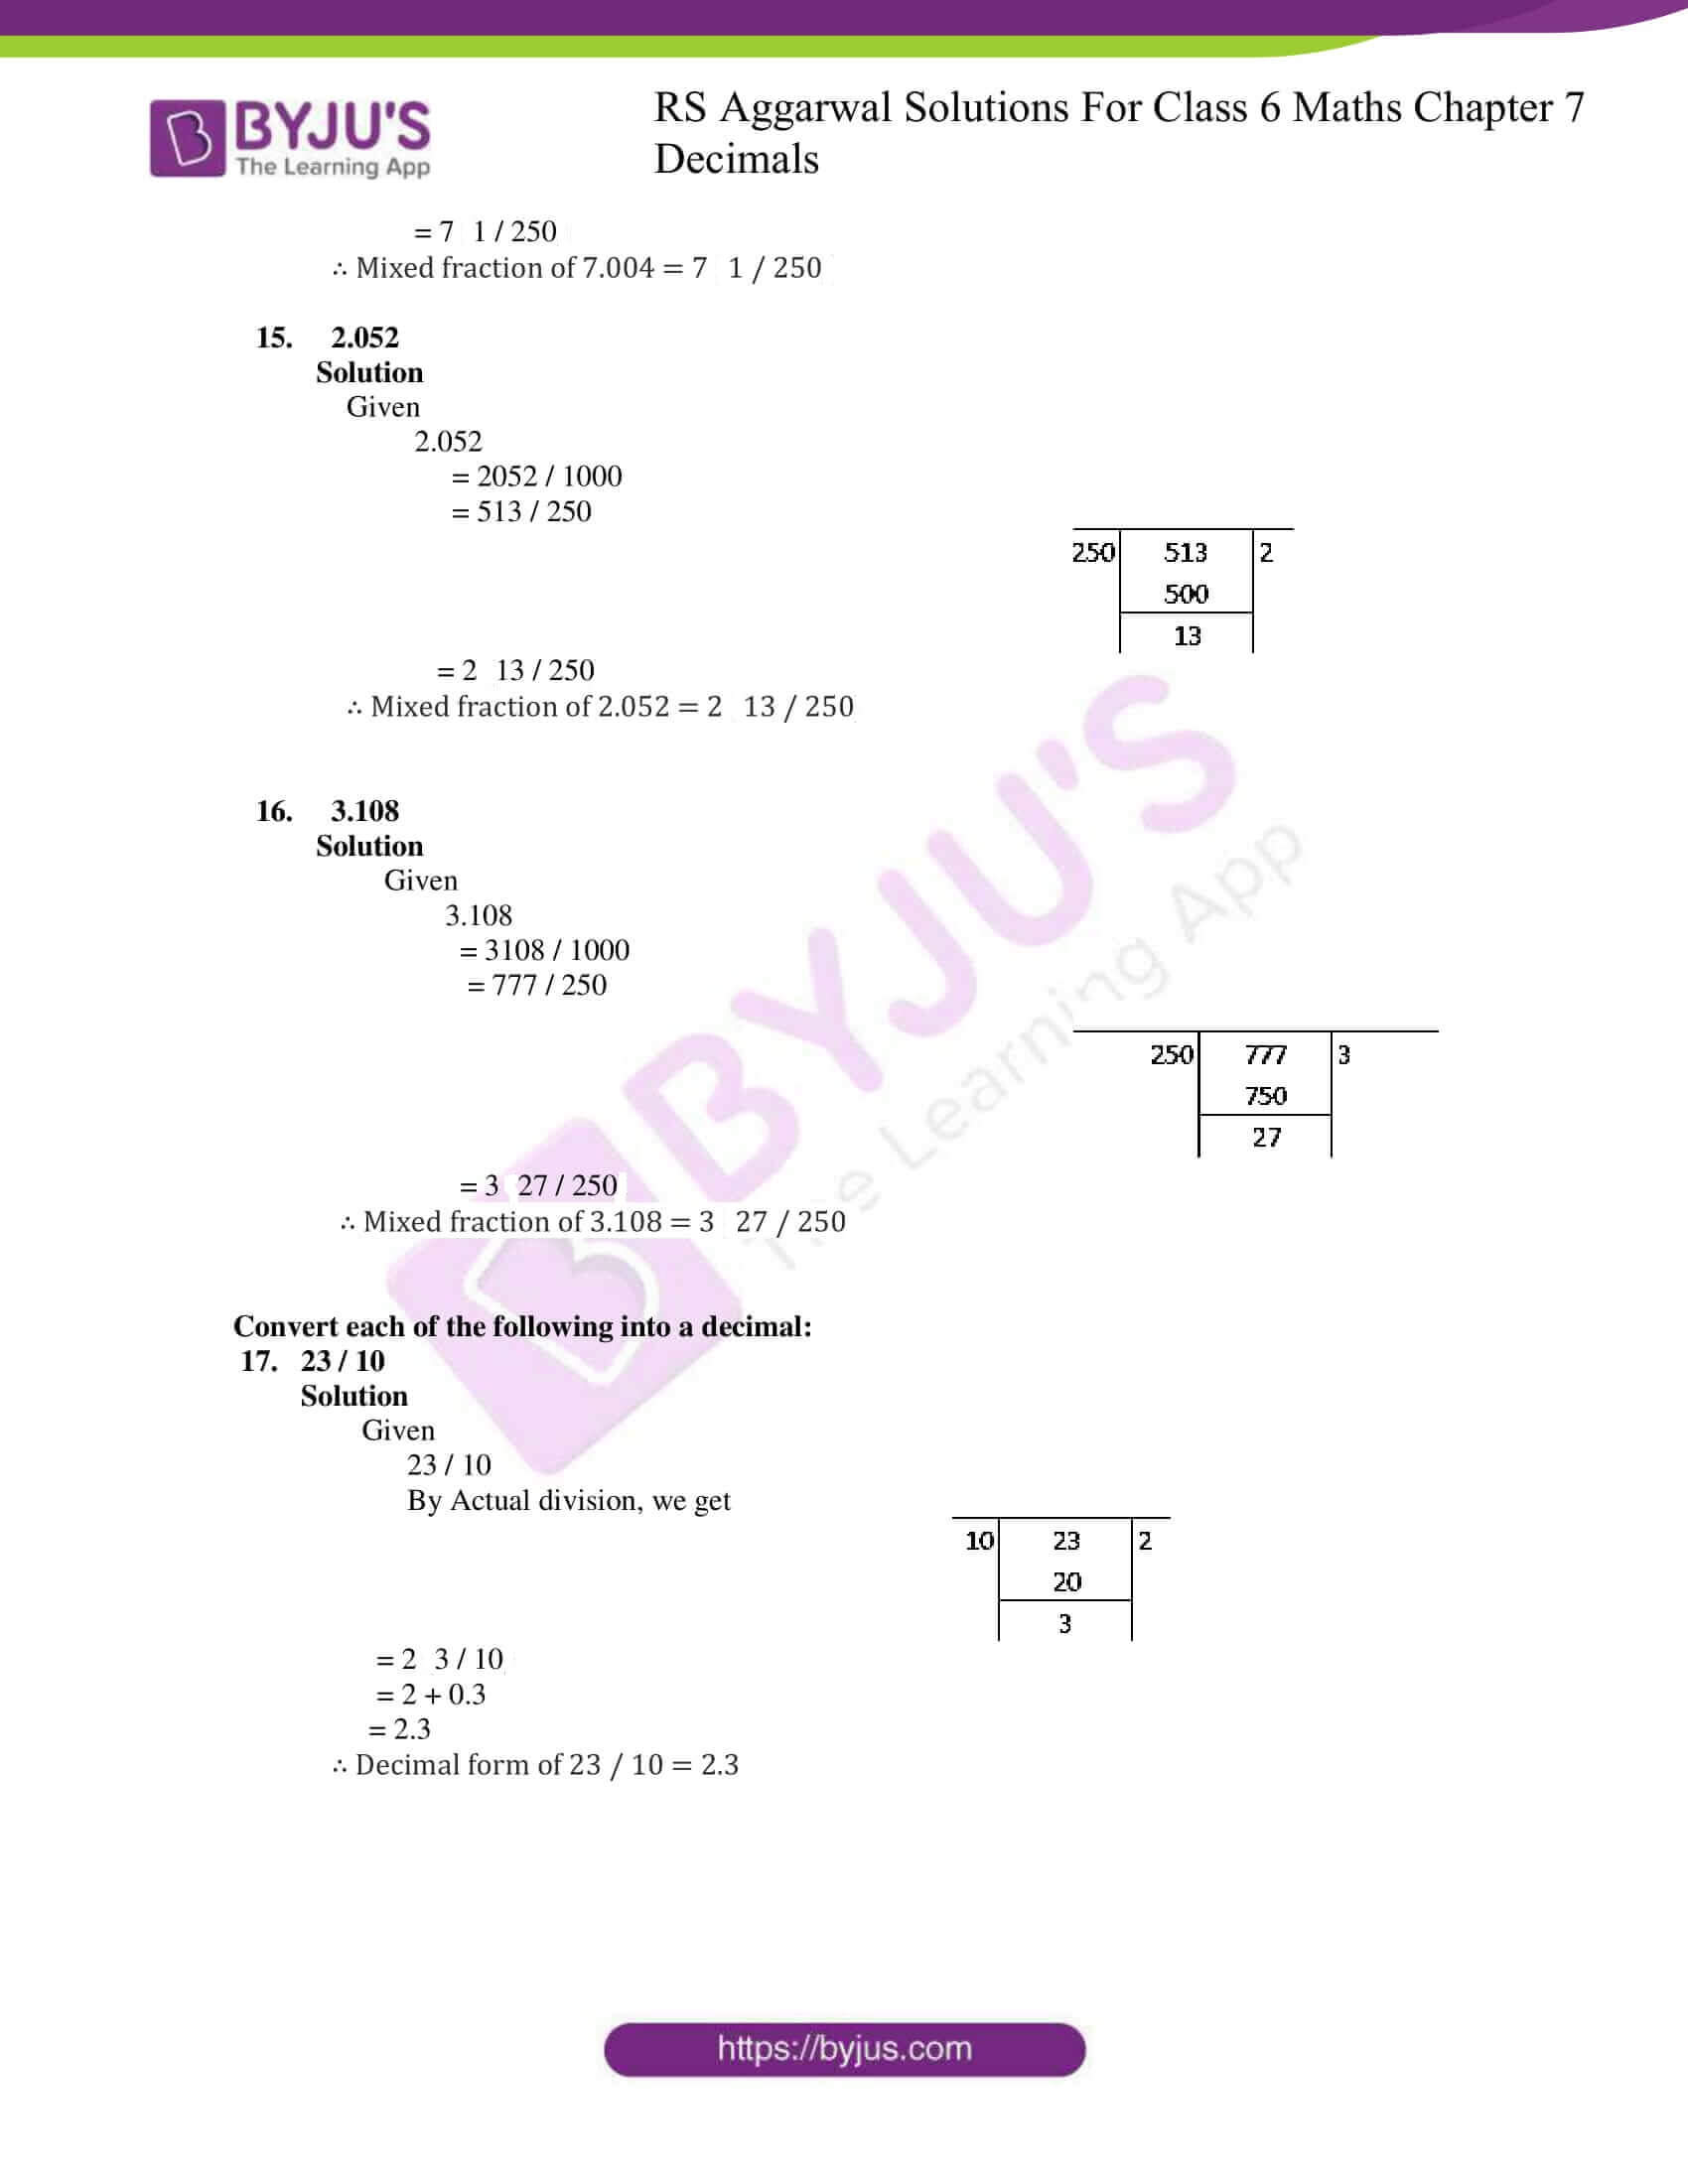 rs aggarwal solutions for class 6 maths chapter 7 deci ex b 4